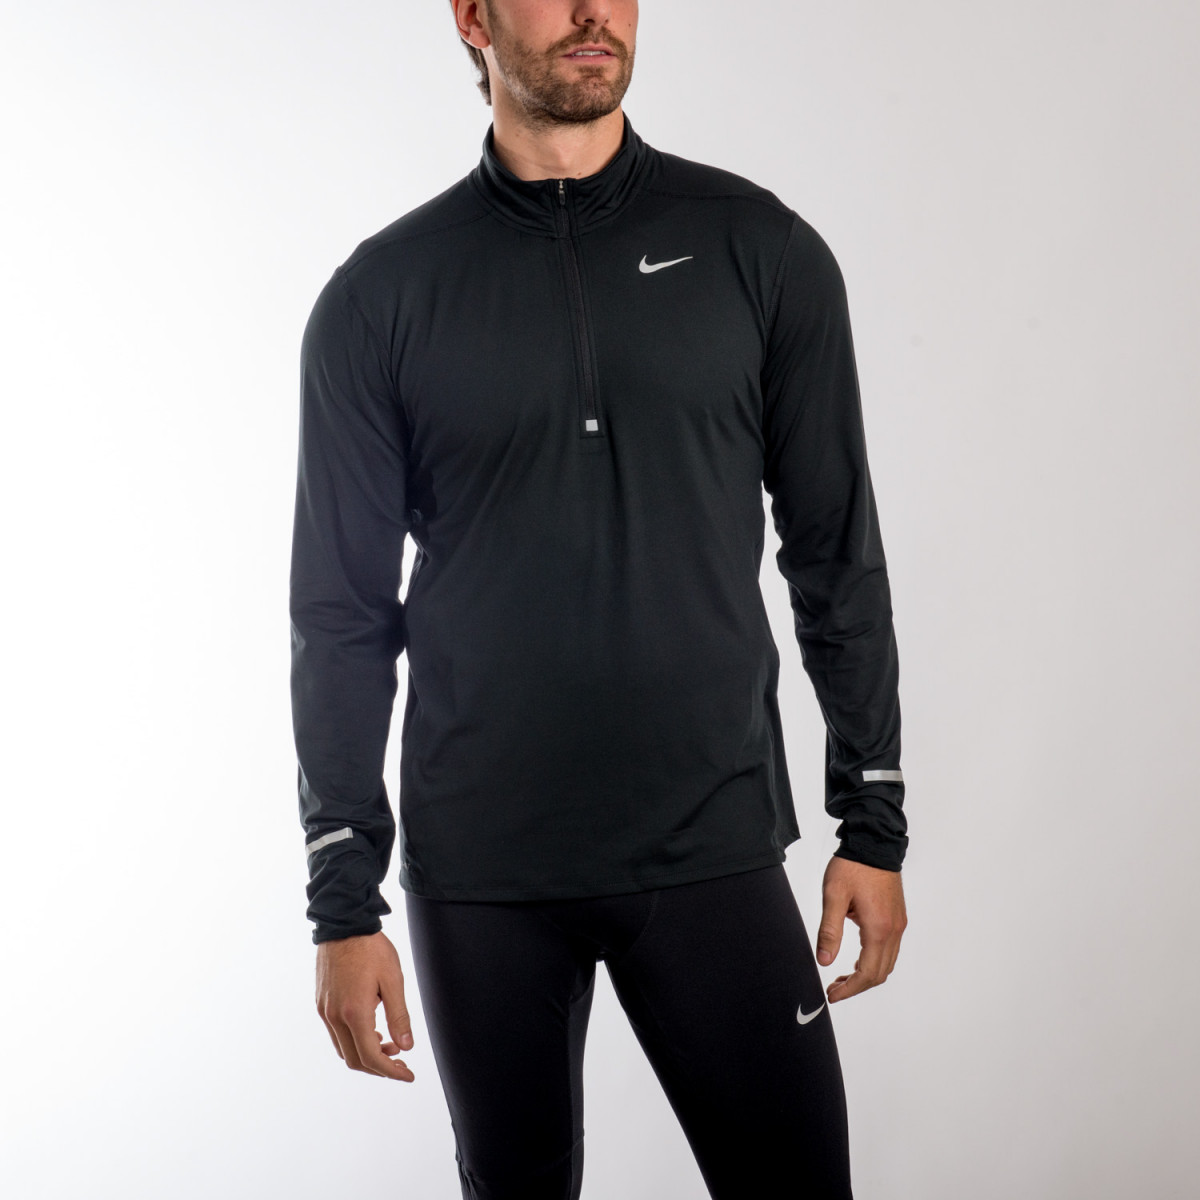 BUZO NIKE DRI-FIT ELEMENT HZ